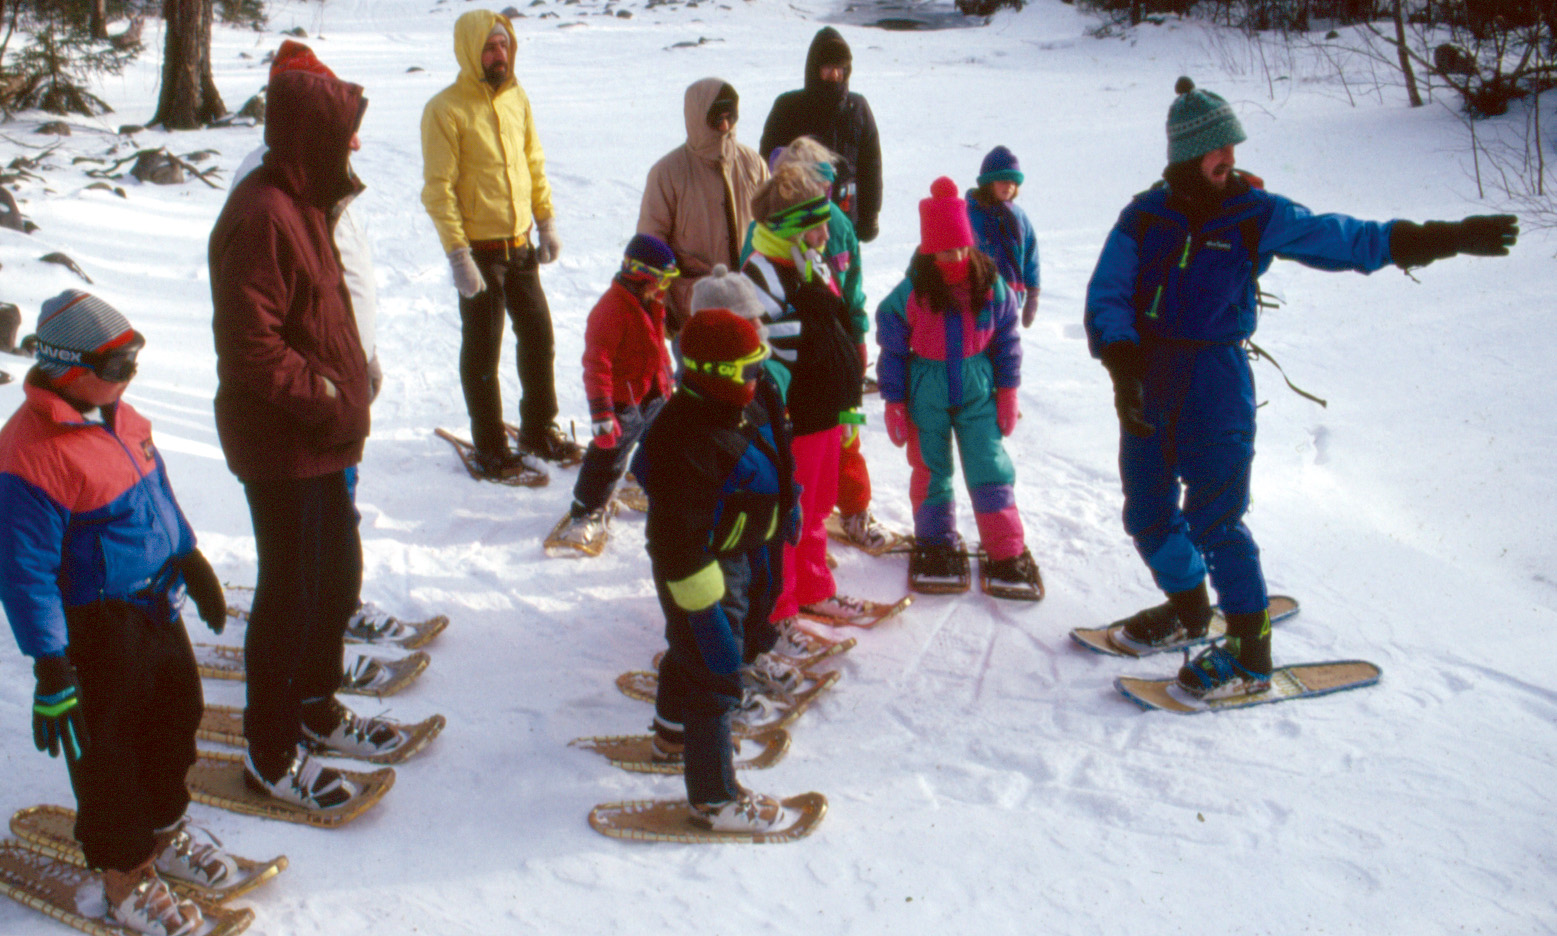 snowshoeing fun and games for kids amc outdoors